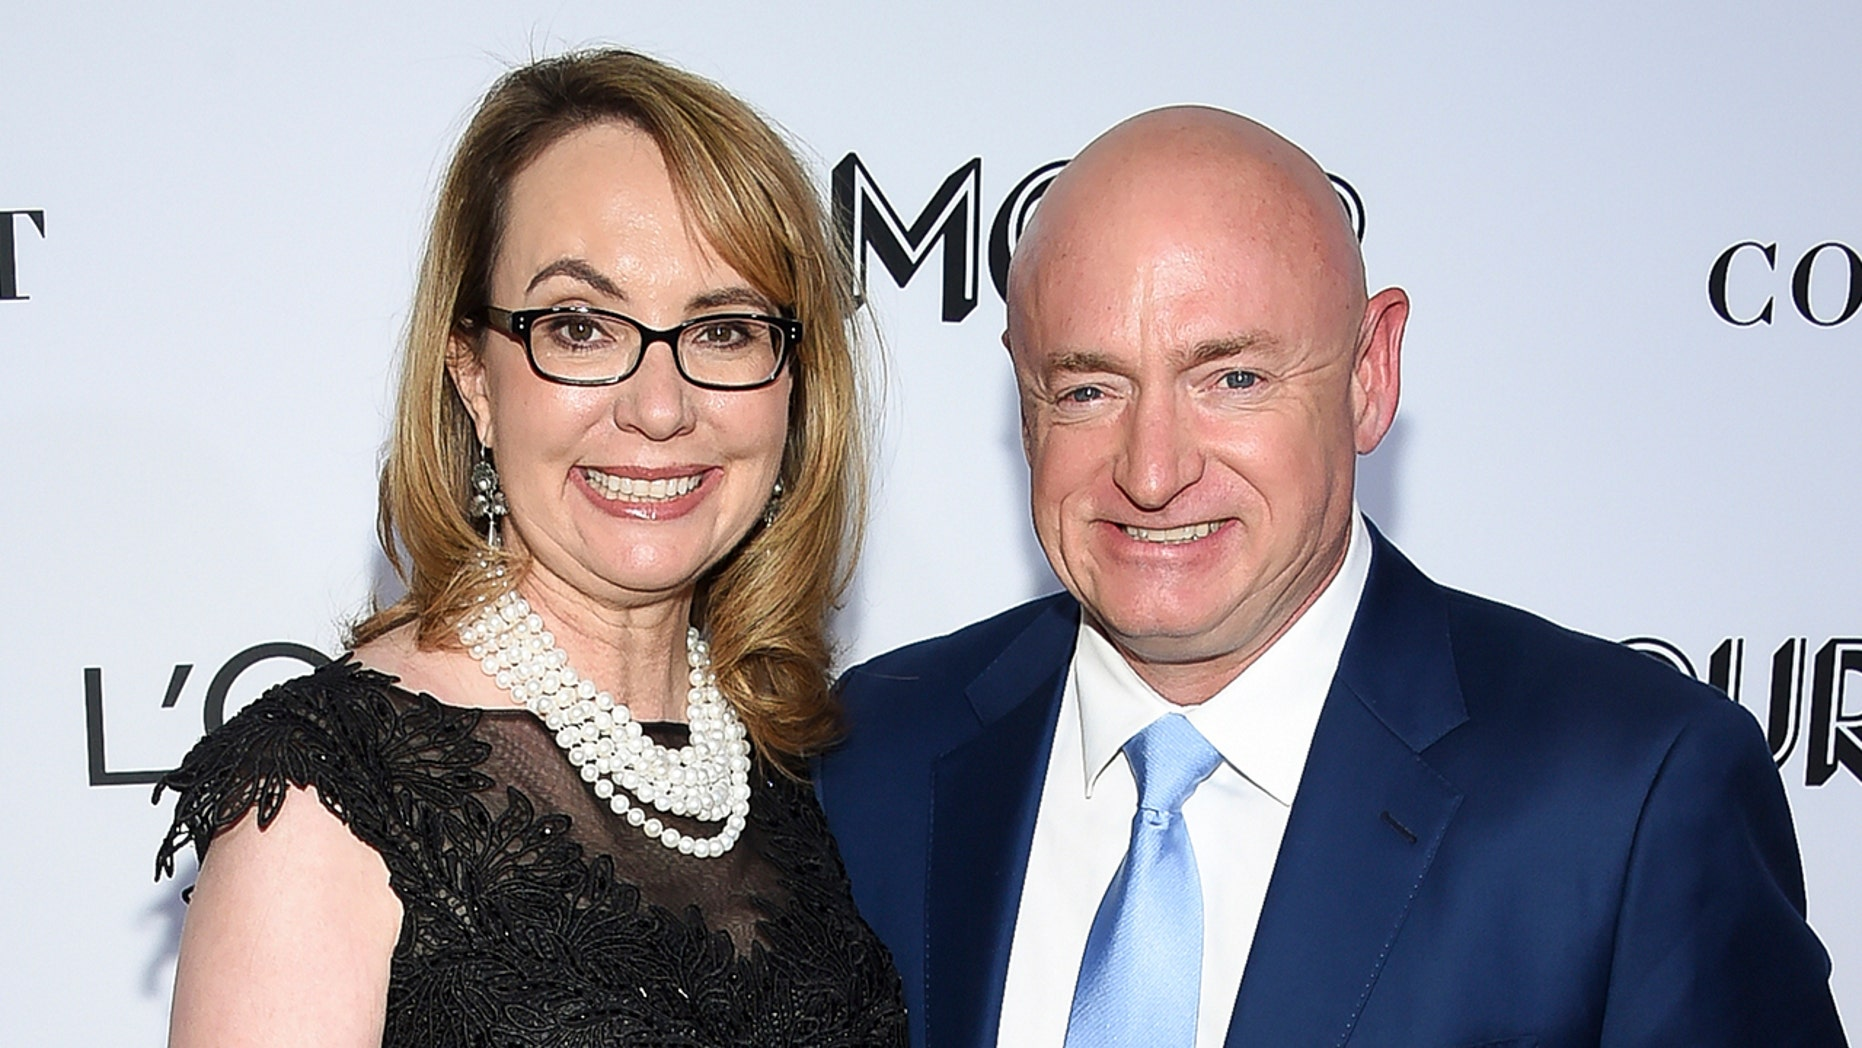 Mark Kelly, husband of former Arizona Rep. Gabrielle Giffords, launches Senate bid